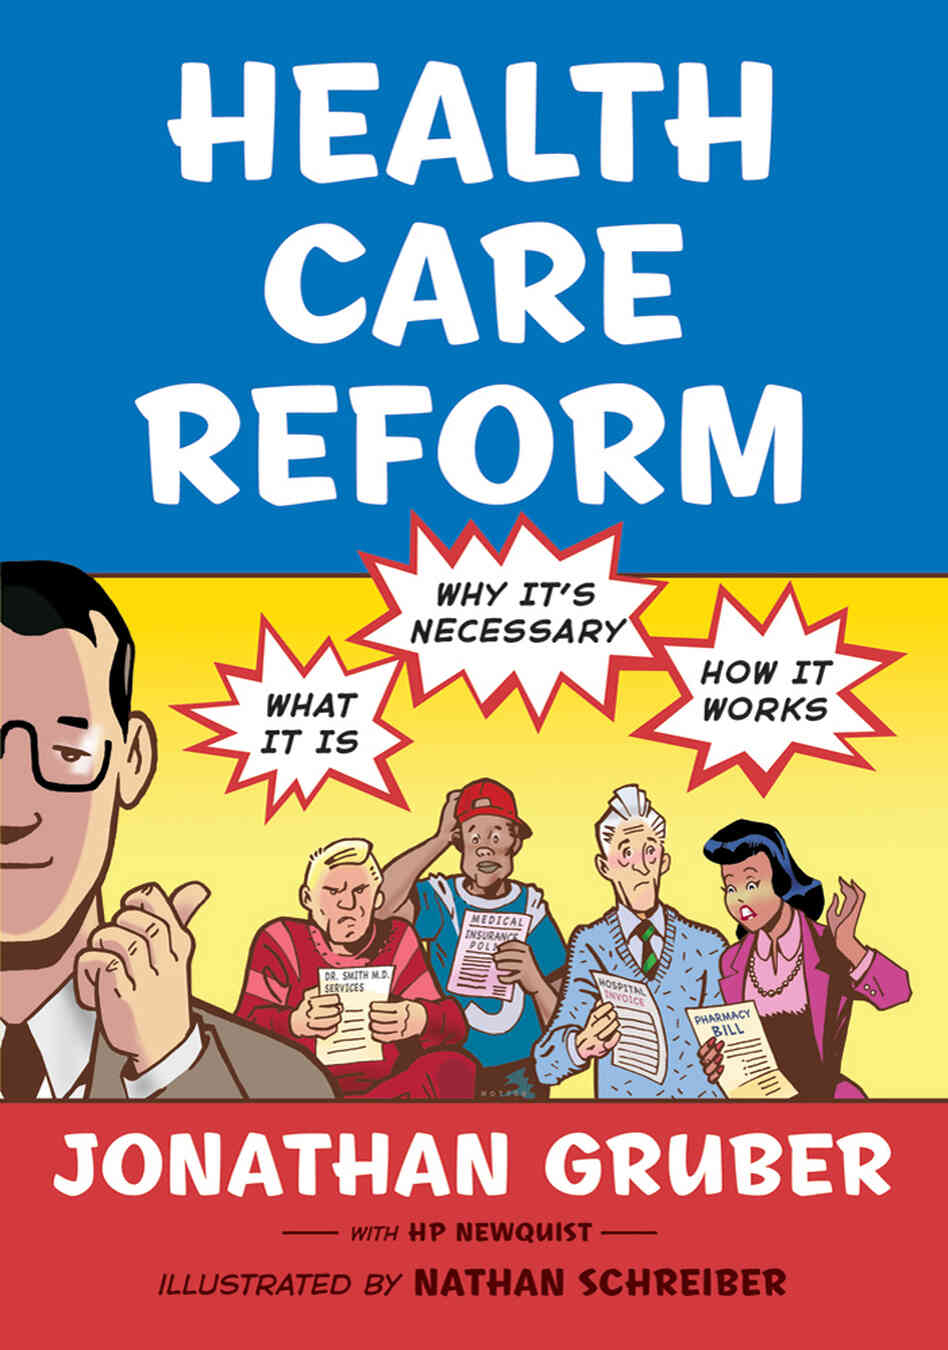 MIT health economist Jonathan Gruber, who explained the ins and outs of health overhaul in a comic book, says that excluding the value of health insurance from federal taxes is a terrible idea, at least from an economist's point of view.